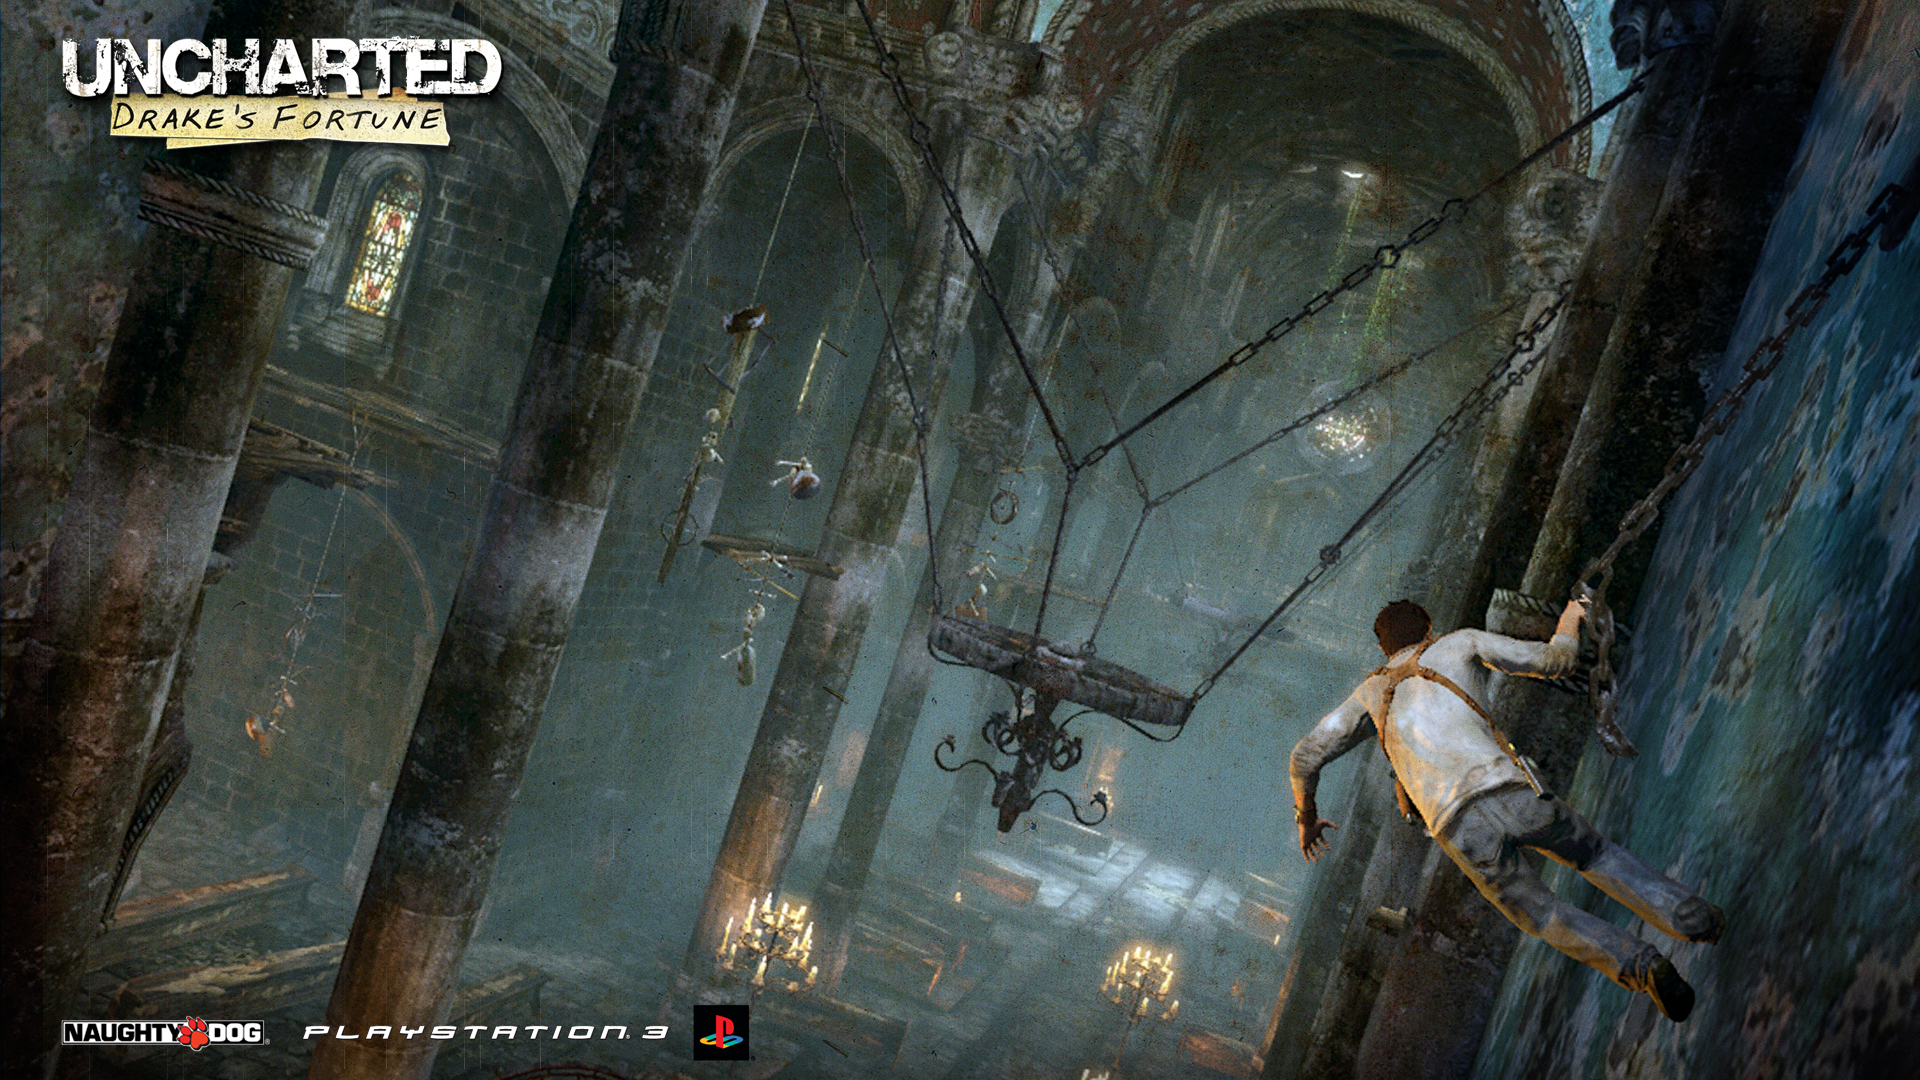 1920x1080 Uncharted Drakes Fortune Desktop PC And Mac Wallpaper